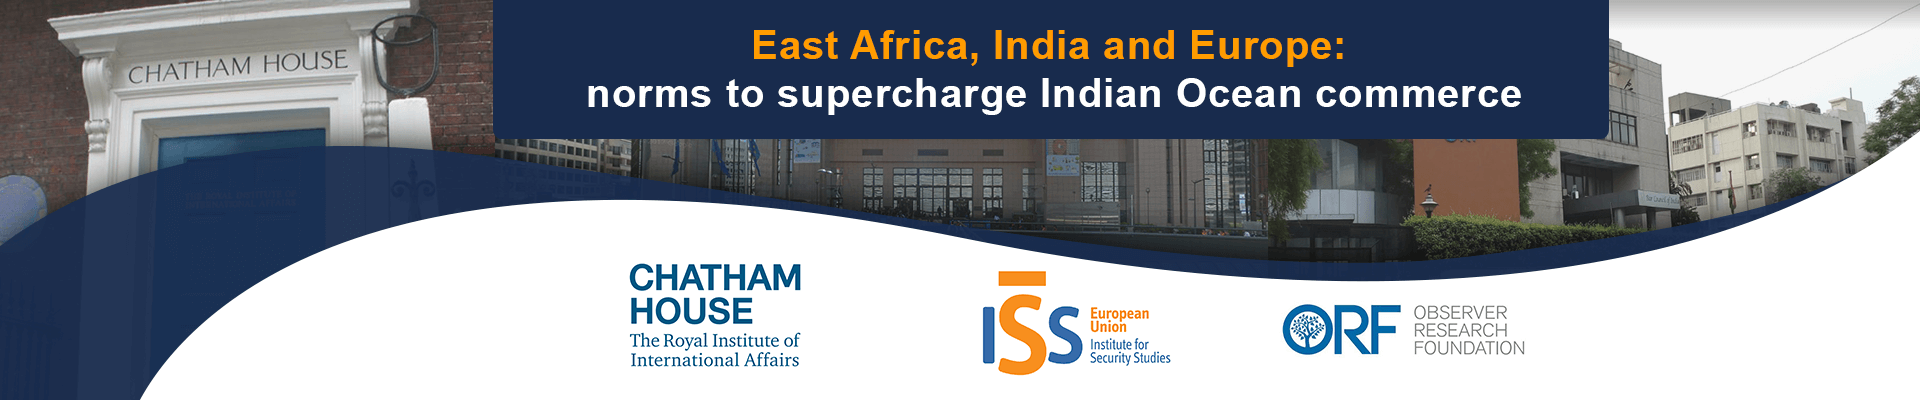 East Africa, India and Europe – norms to supercharge Indian Ocean commerce